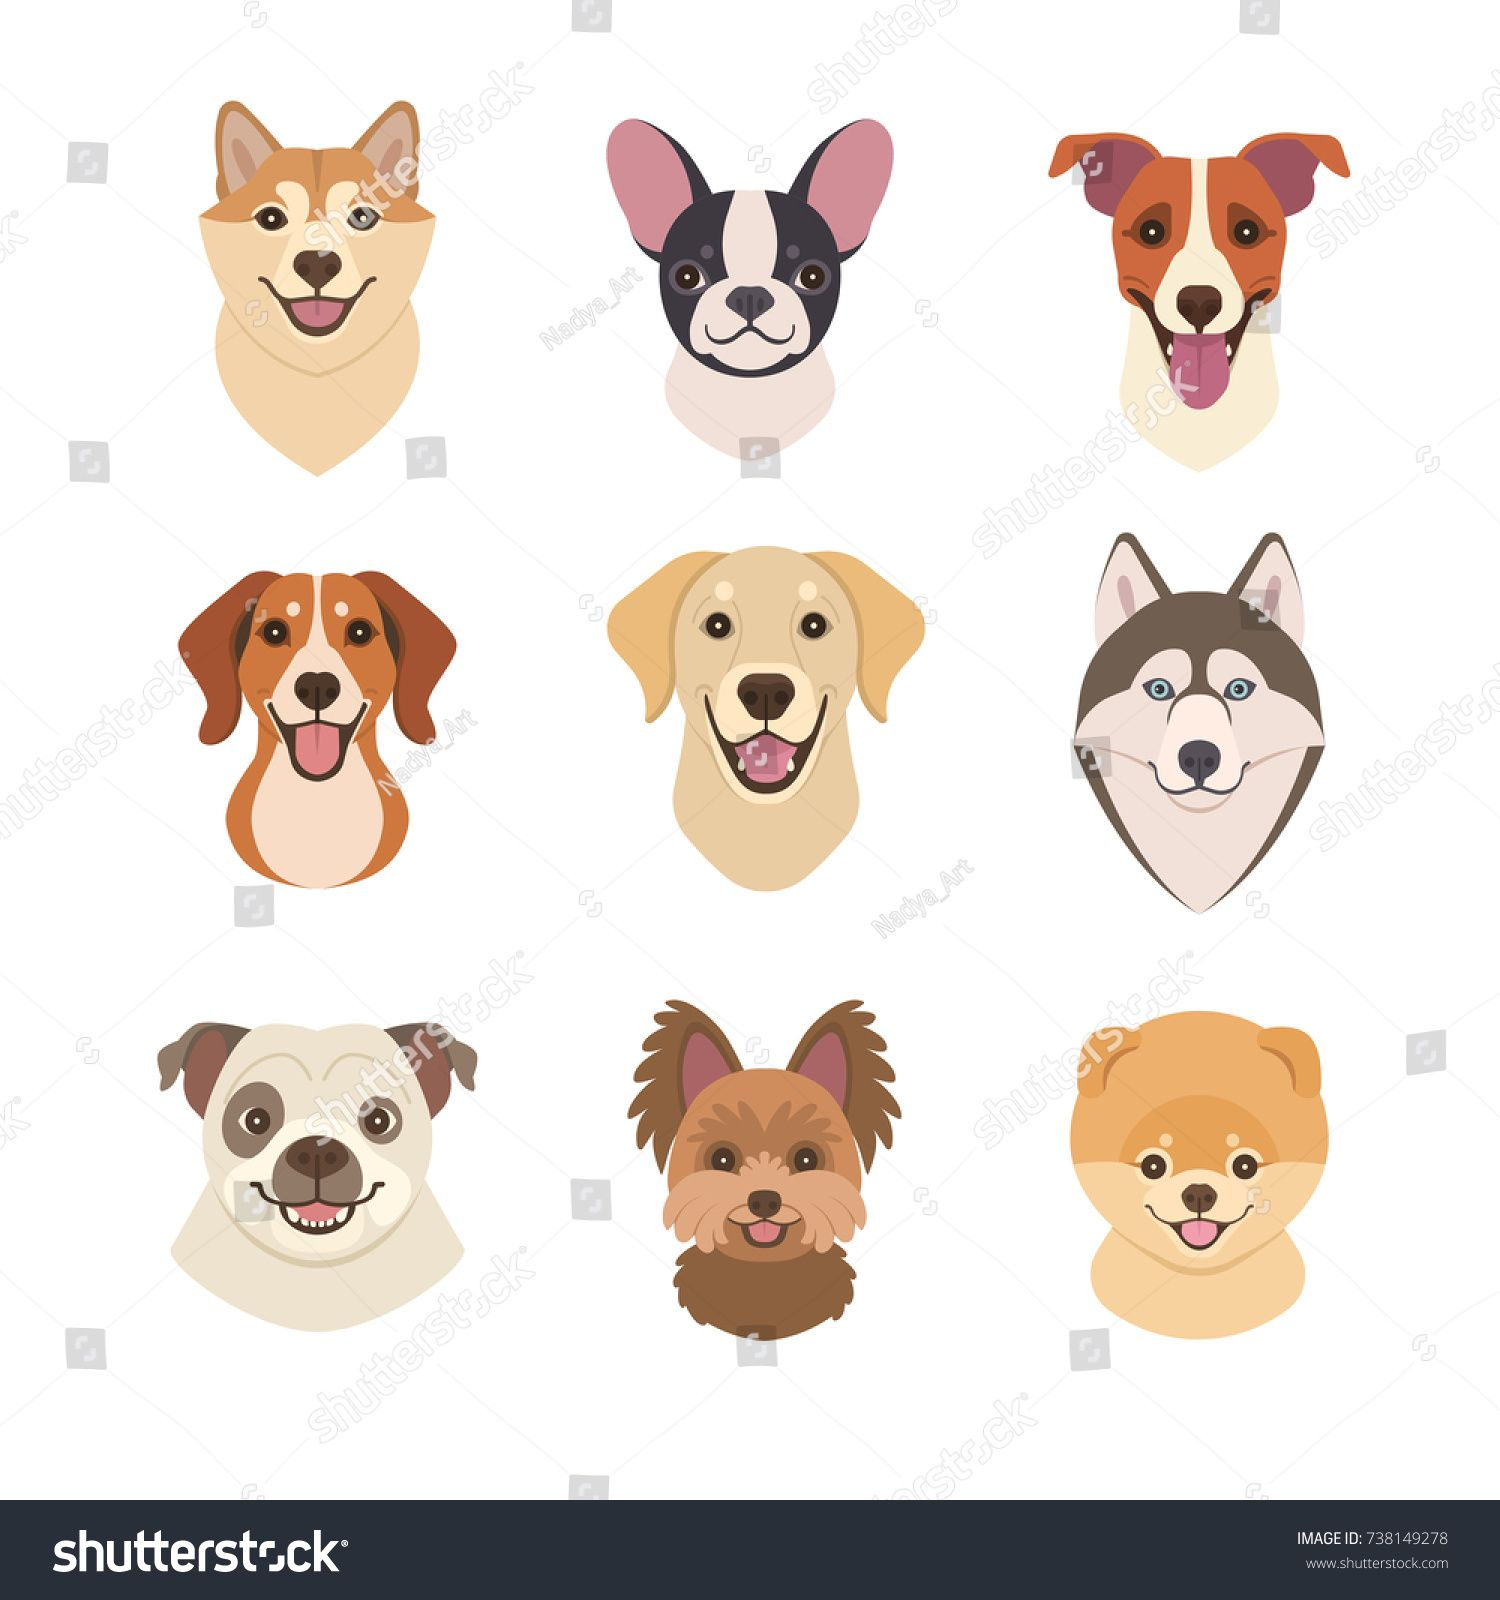 Dogs Faces Collection Vector Illustration Of Funny Cartoon